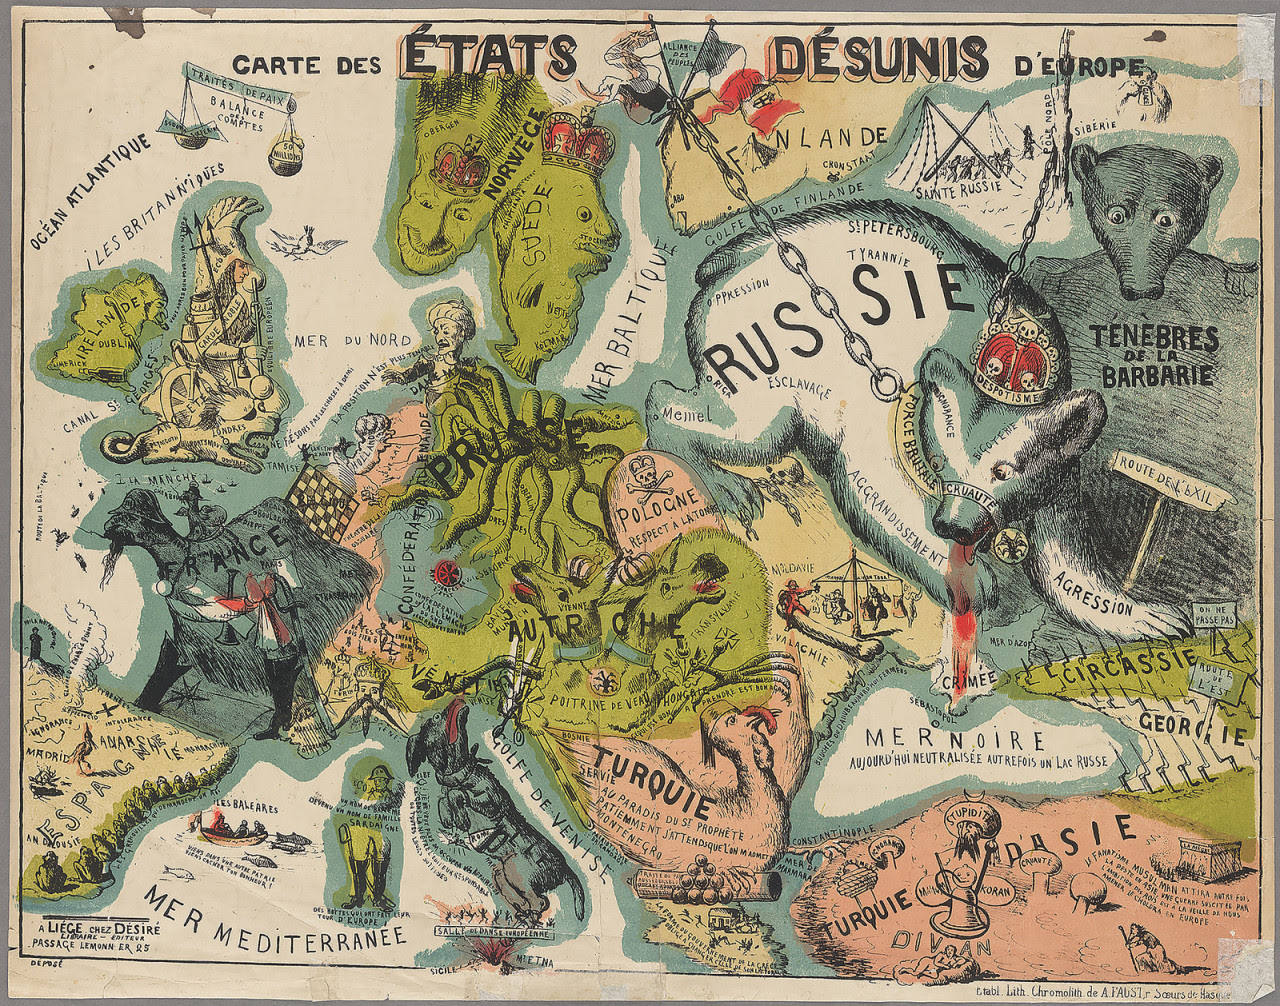 http://atlasobscura.tumblr.com/post/138097679321/mapsontheweb-map-of-the-disunited-states-of